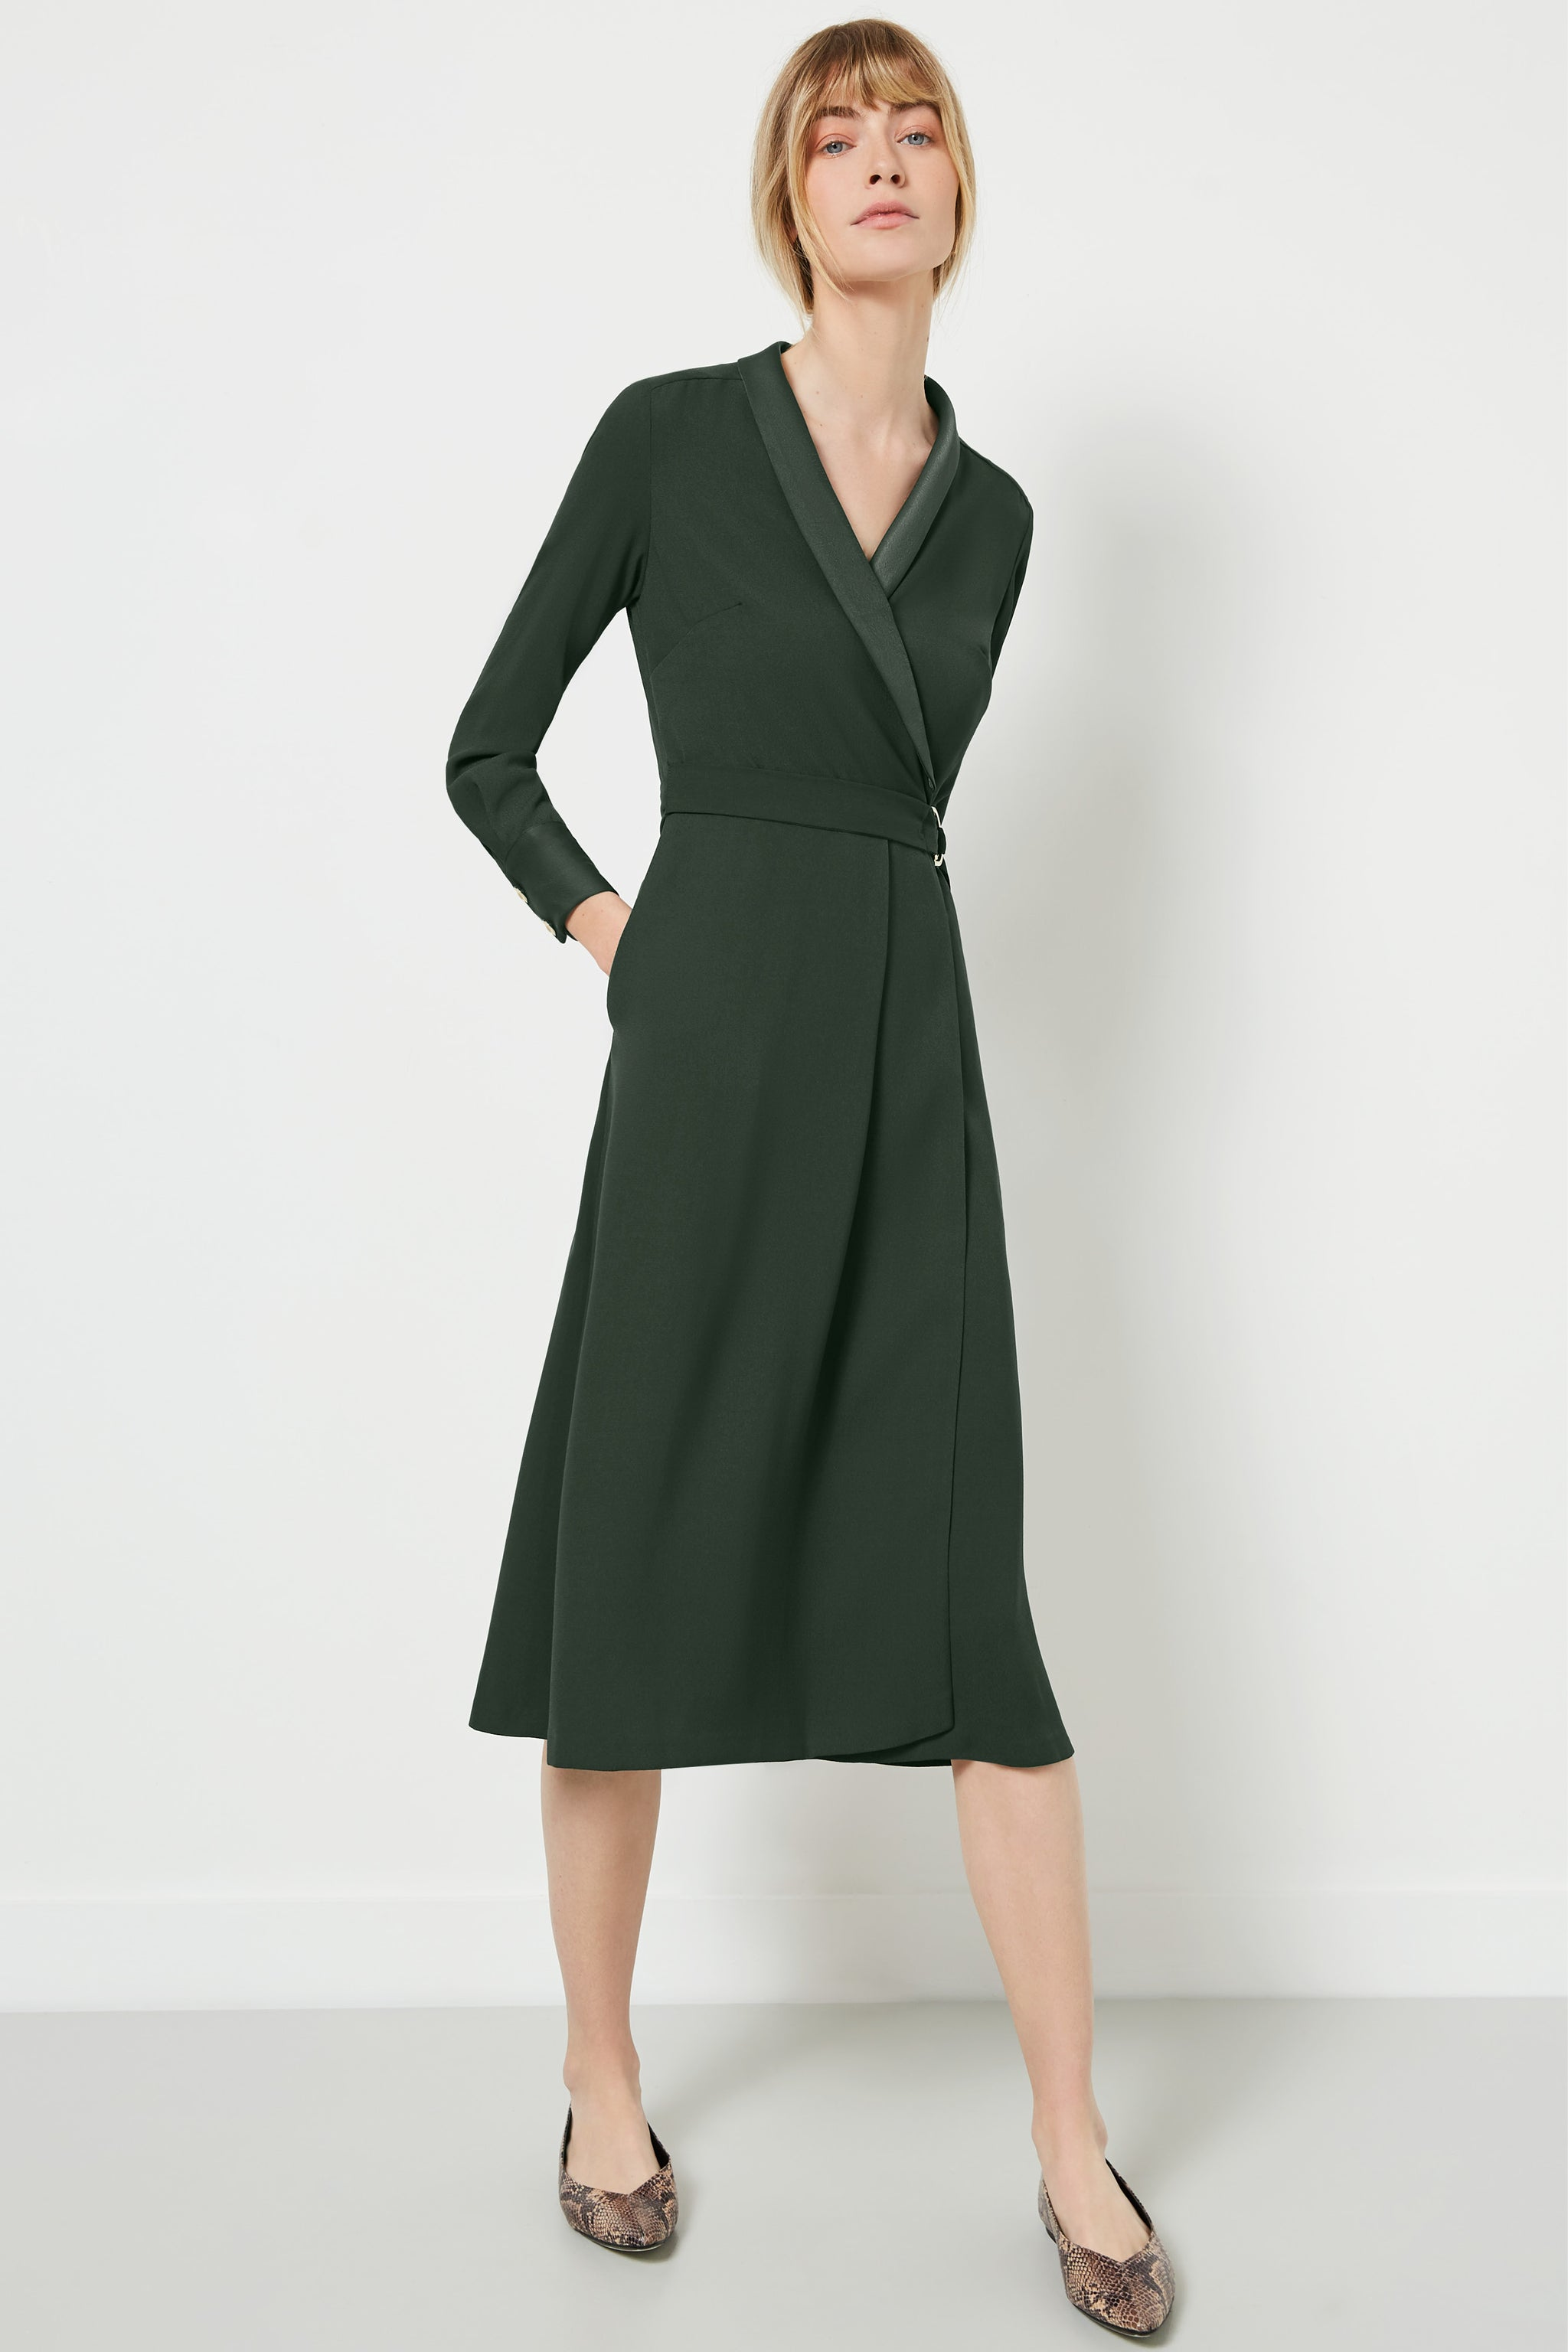 Carlton Khaki Dress